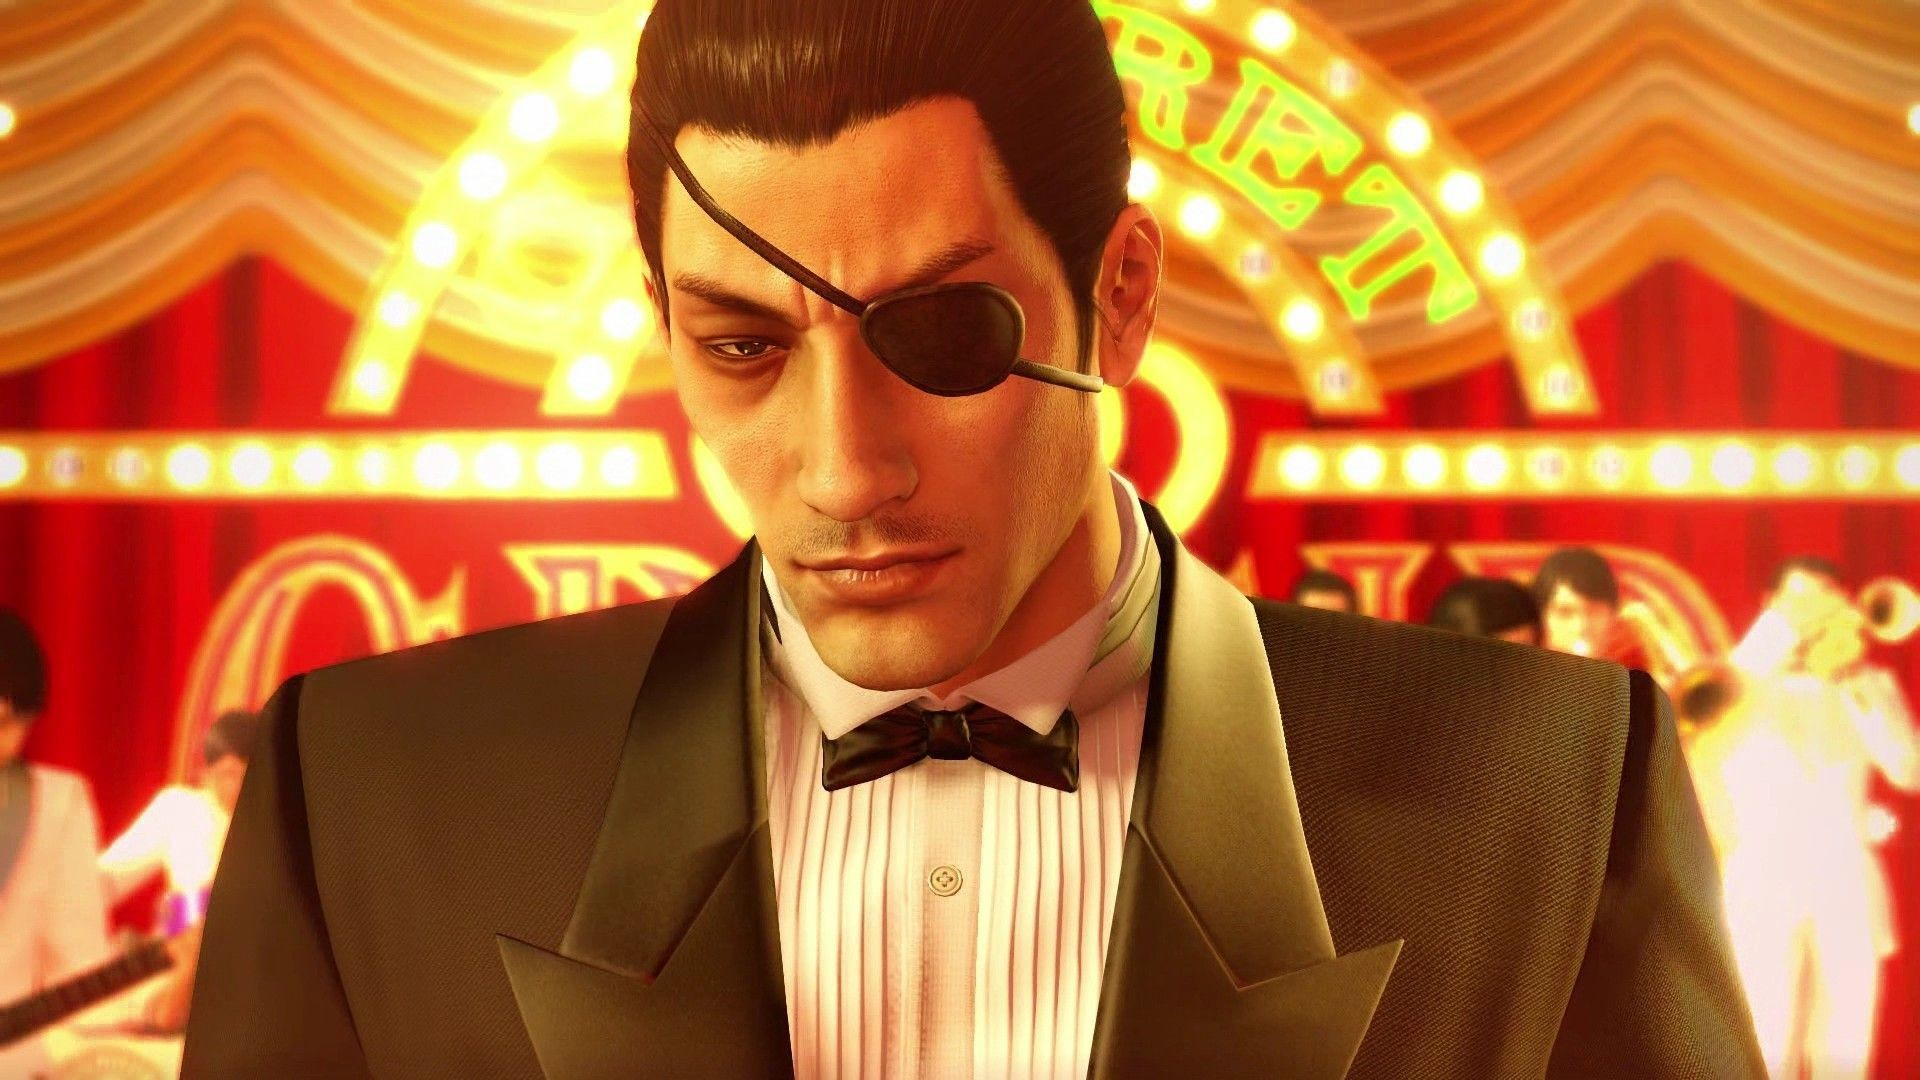 Wallpapers Yakuza 80 Background Pictures Sony Ps4 0 Zero R1 1920x1080 The Night Out Serves As A Tutorial Of Sorts Getting You Acquainted With Various Controls And Fighting Moves System In